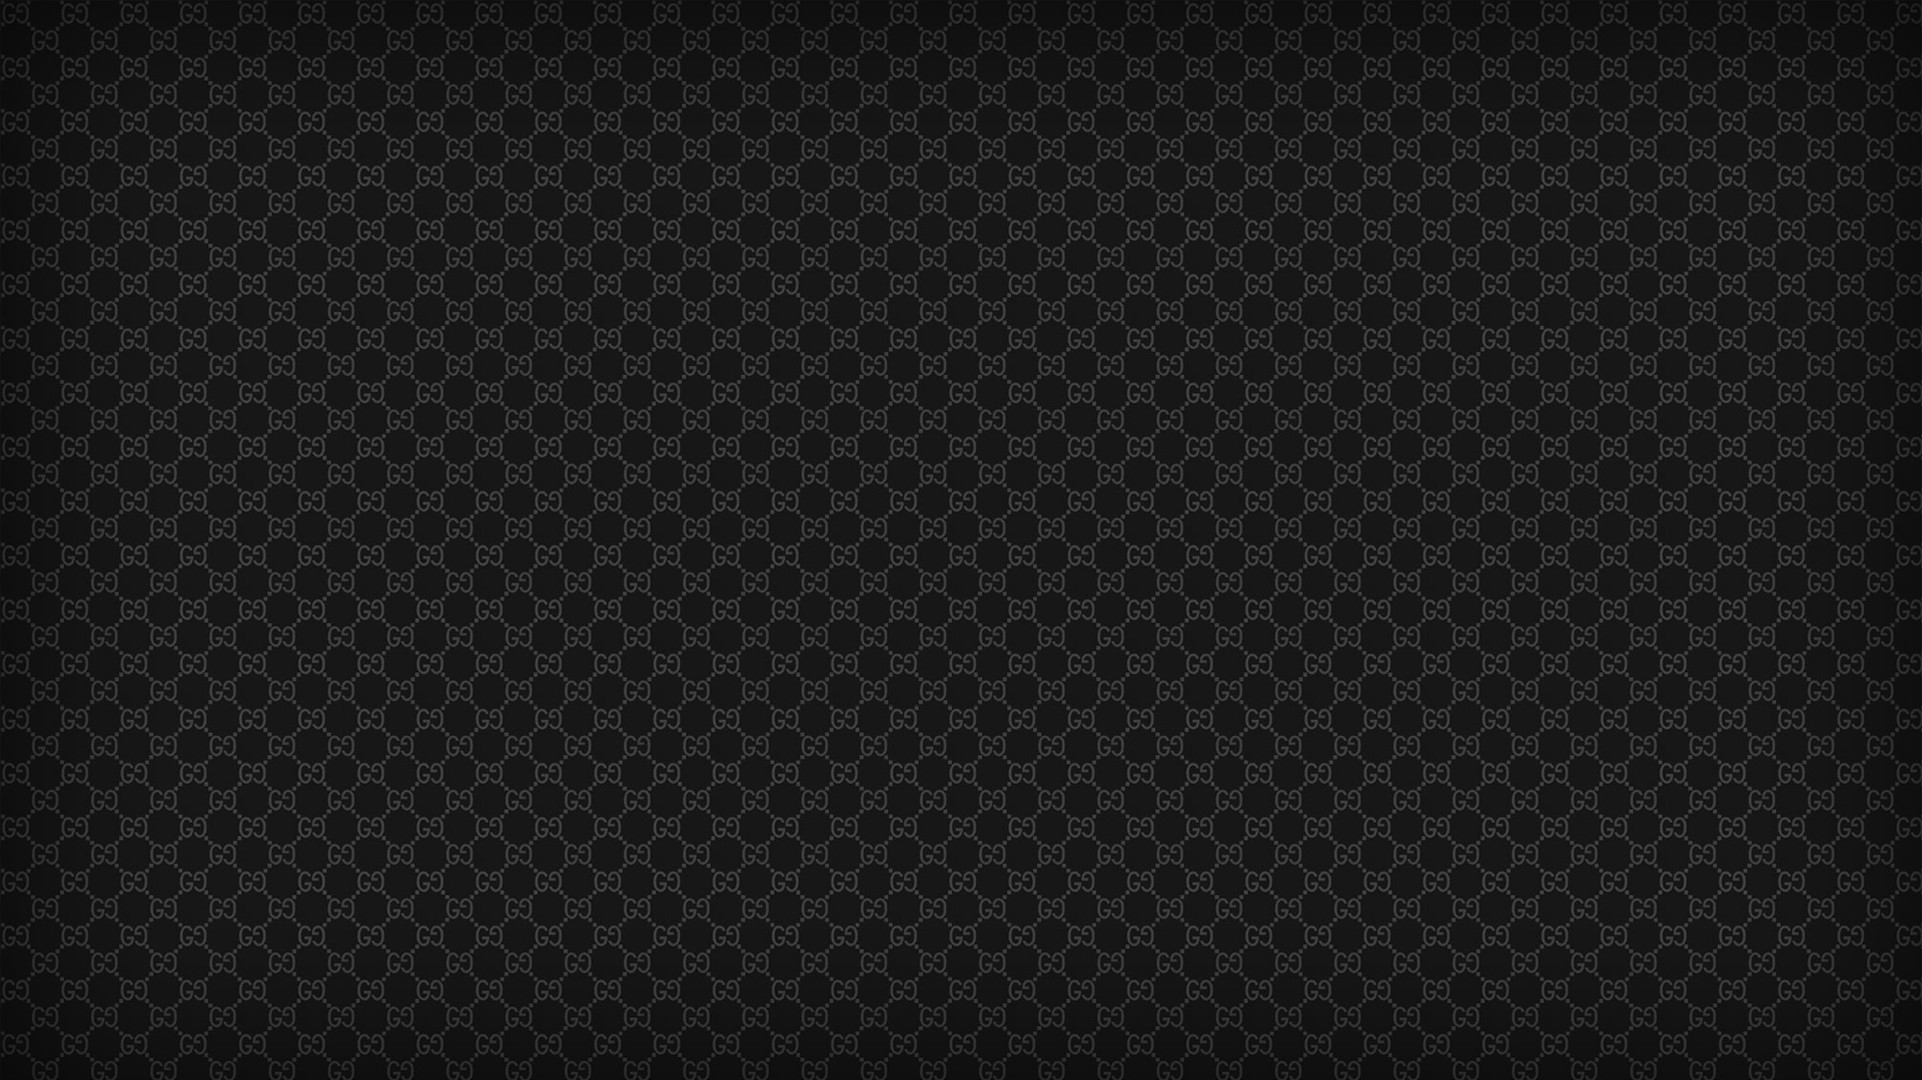 1922x1080 gucci best wallpapers free | 2048x1497 | 898 kB by Sparrow Blare